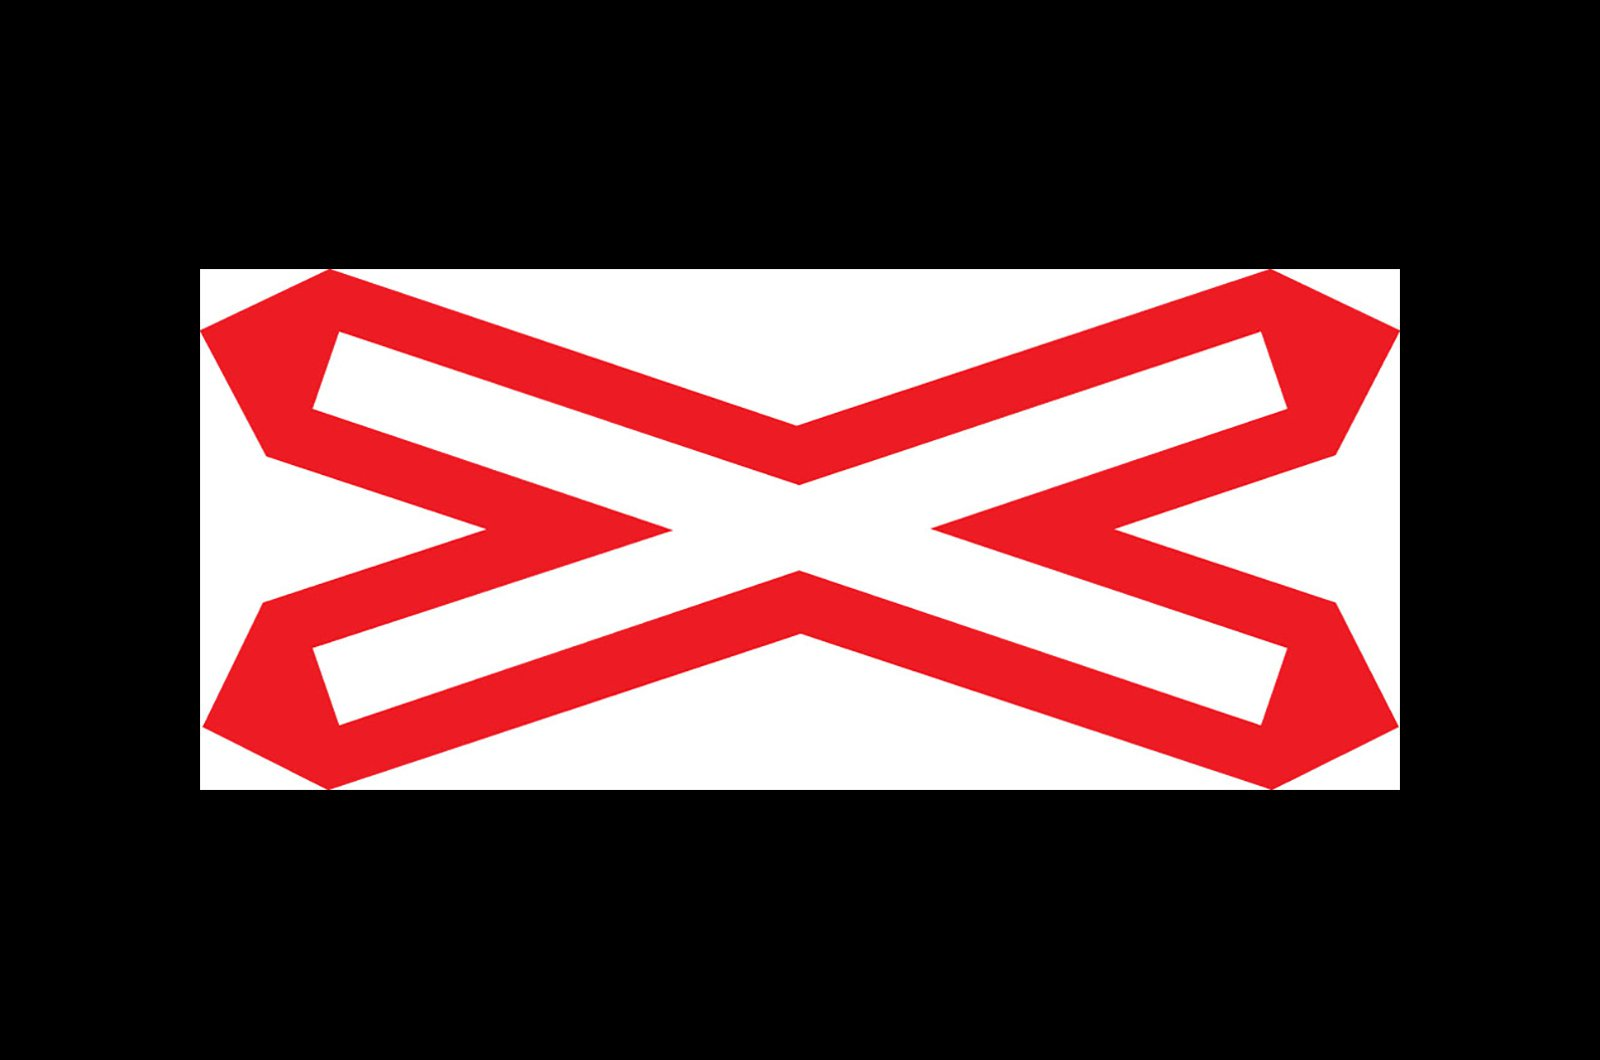 Level crossing without barrier